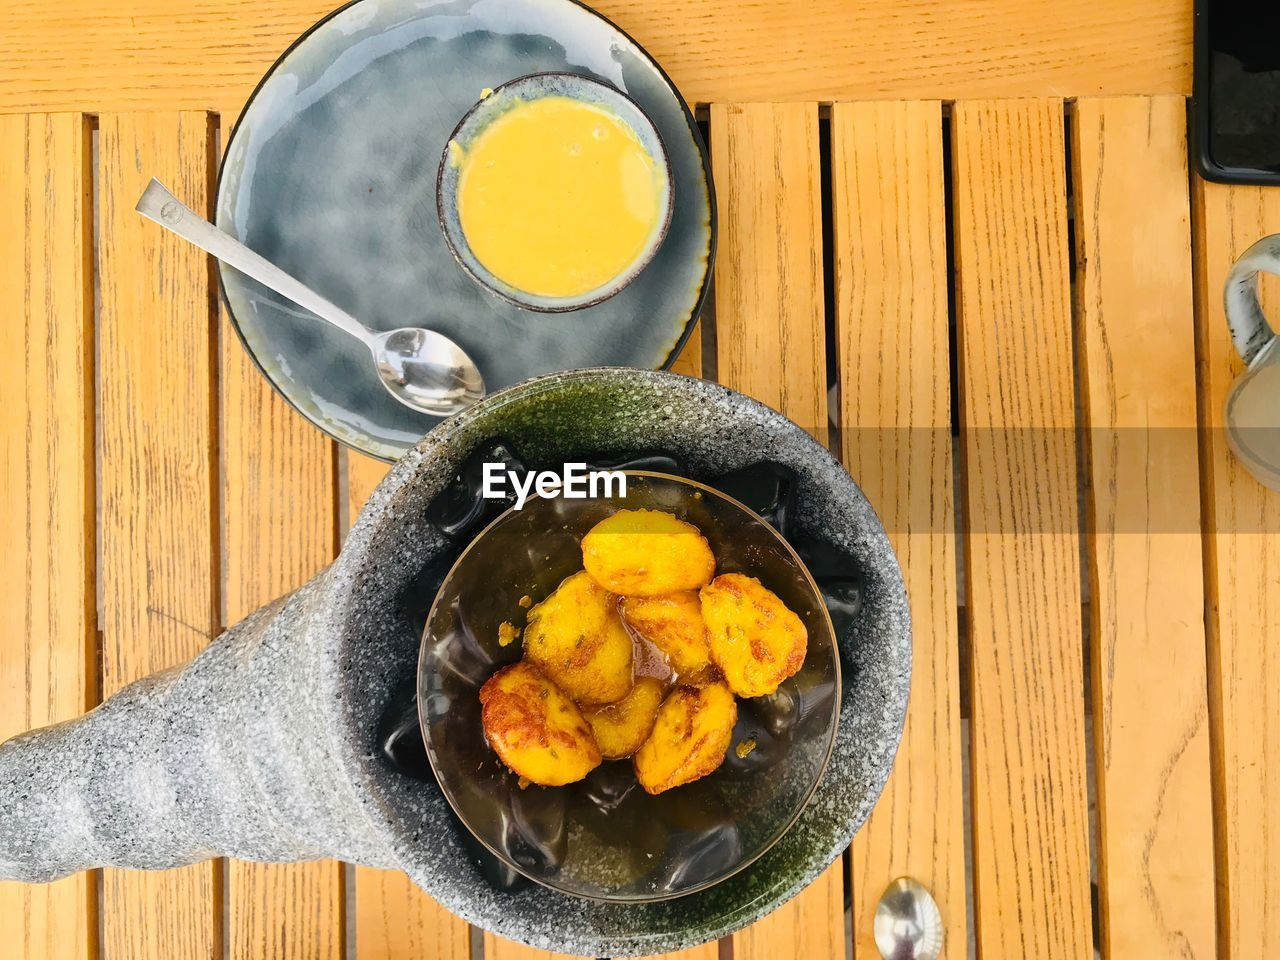 food and drink, food, wood - material, directly above, kitchen utensil, table, freshness, healthy eating, high angle view, household equipment, indoors, no people, wellbeing, bowl, egg, still life, drink, refreshment, close-up, ready-to-eat, frying pan, glass, egg yolk, breakfast